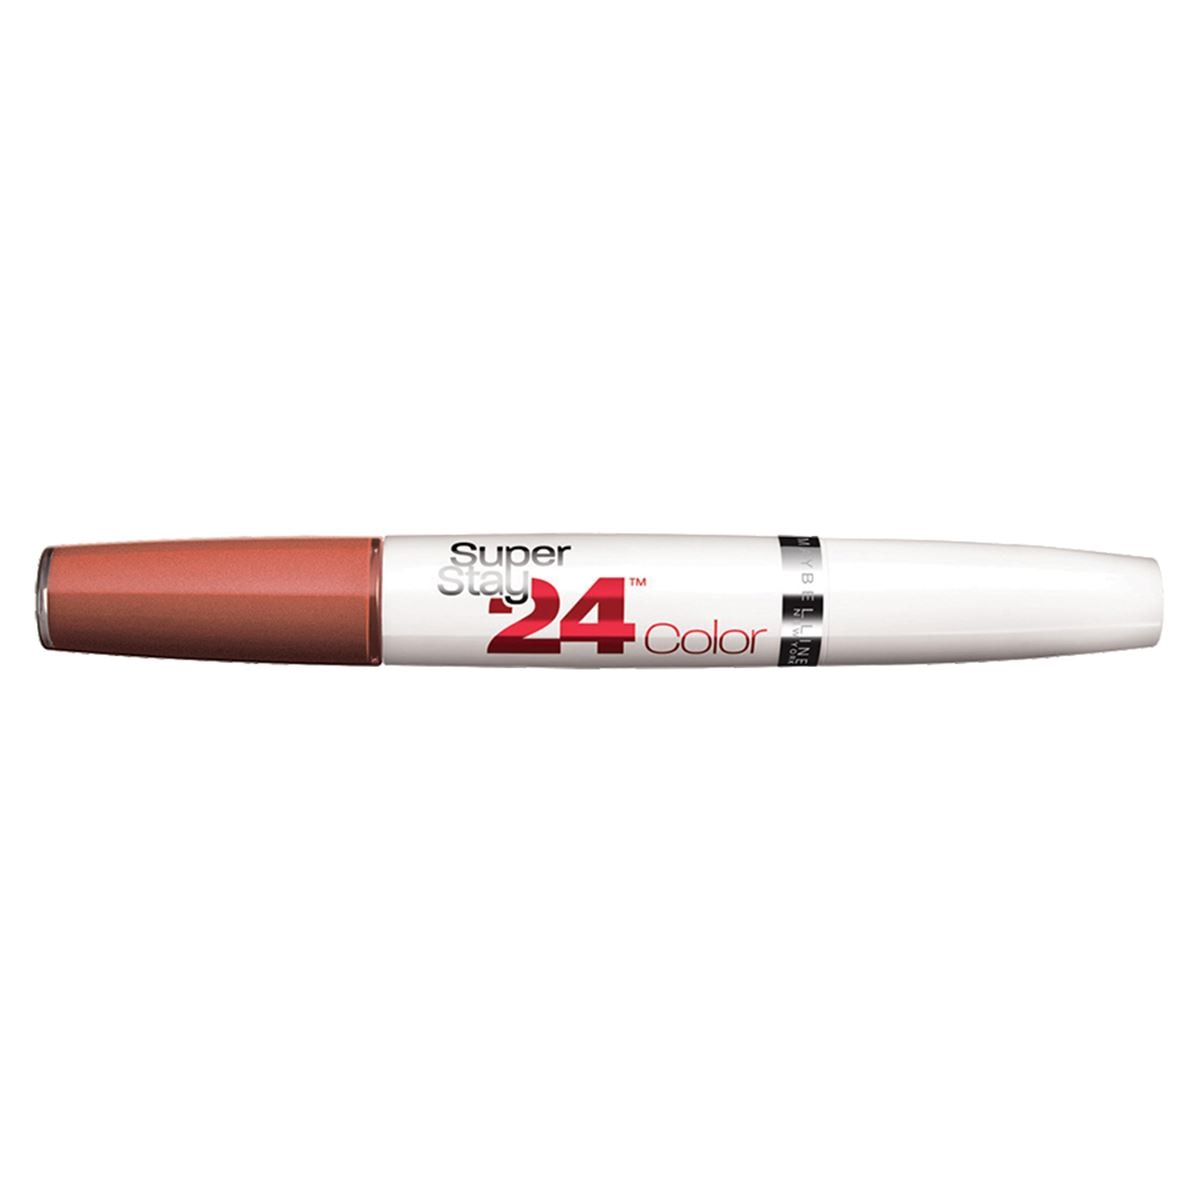 Superstay 24 lipcolor pink spice sb  - Sanborns